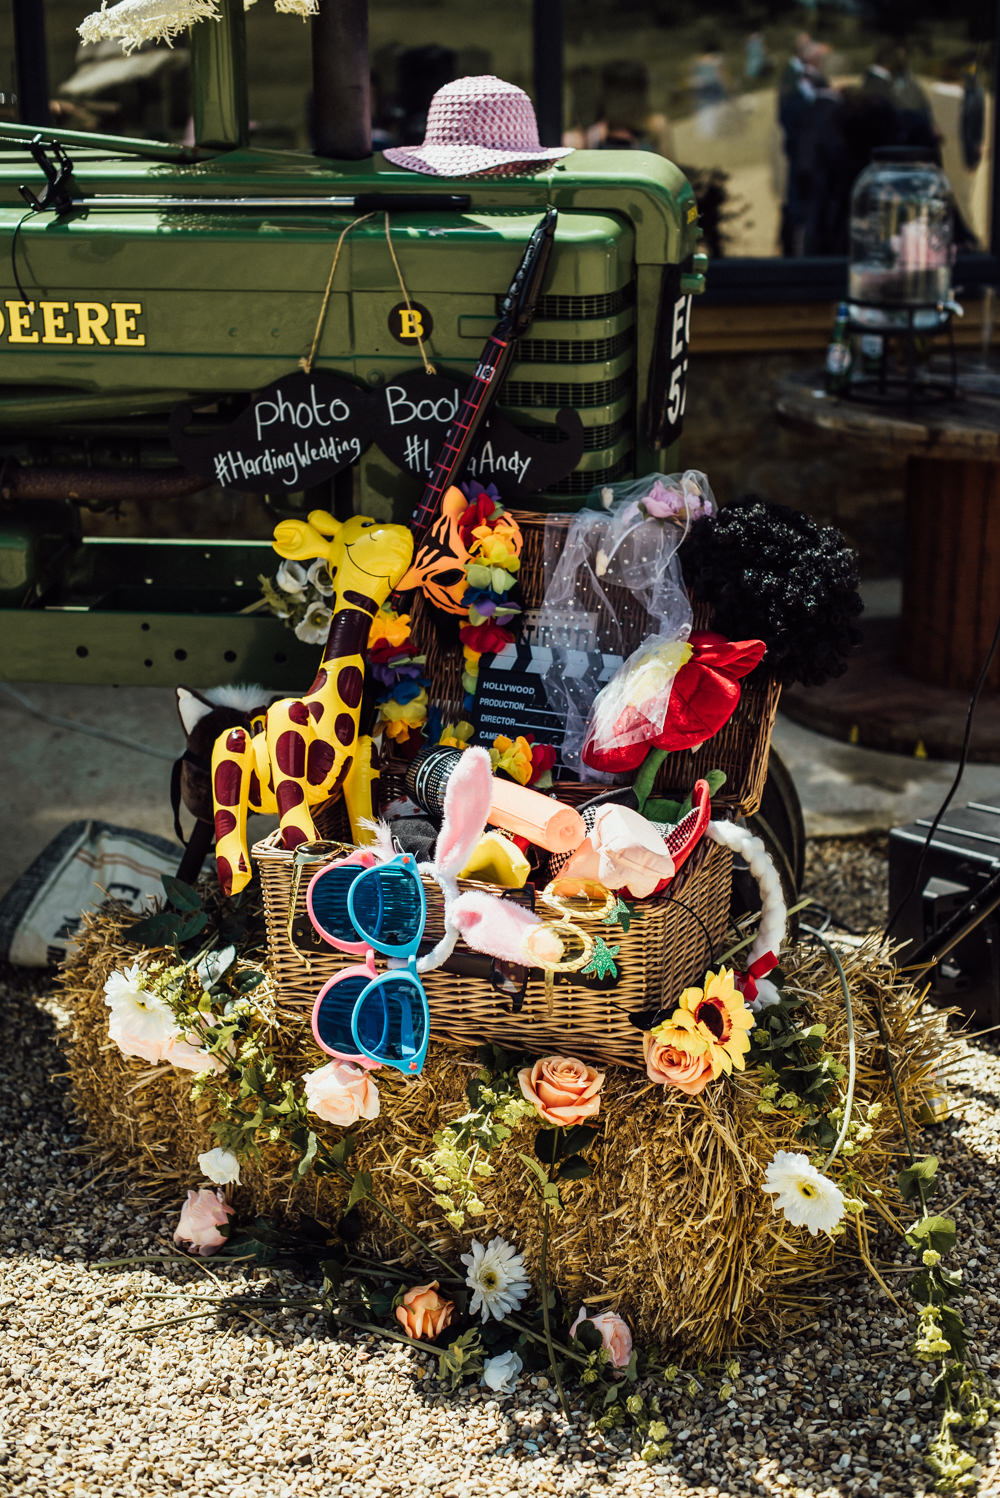 Tractor Photo Booth Props Long Furlong Farm Wedding Michelle Wood Photographer